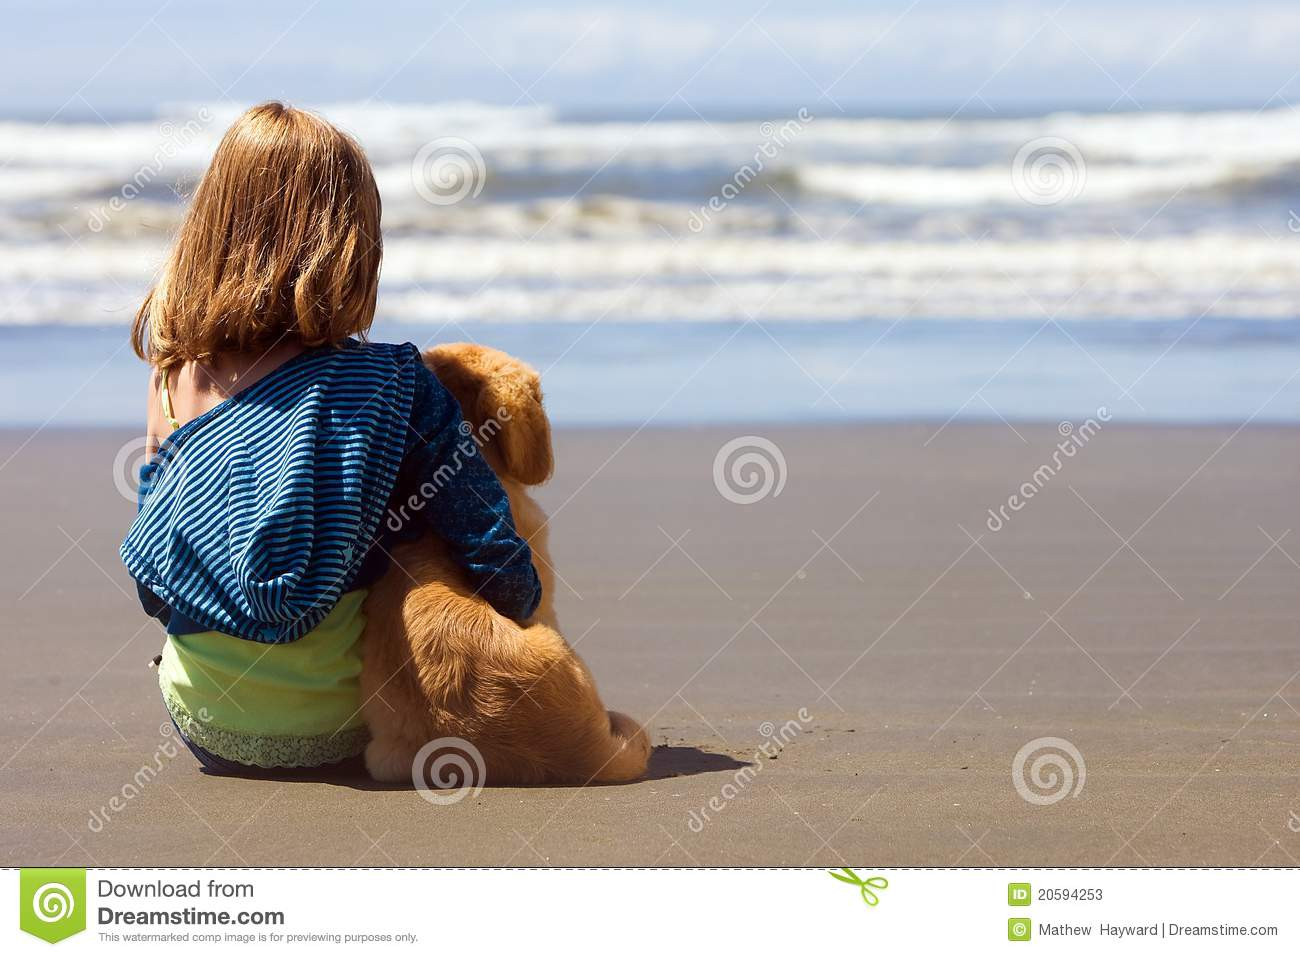 Child and Puppy at the beach